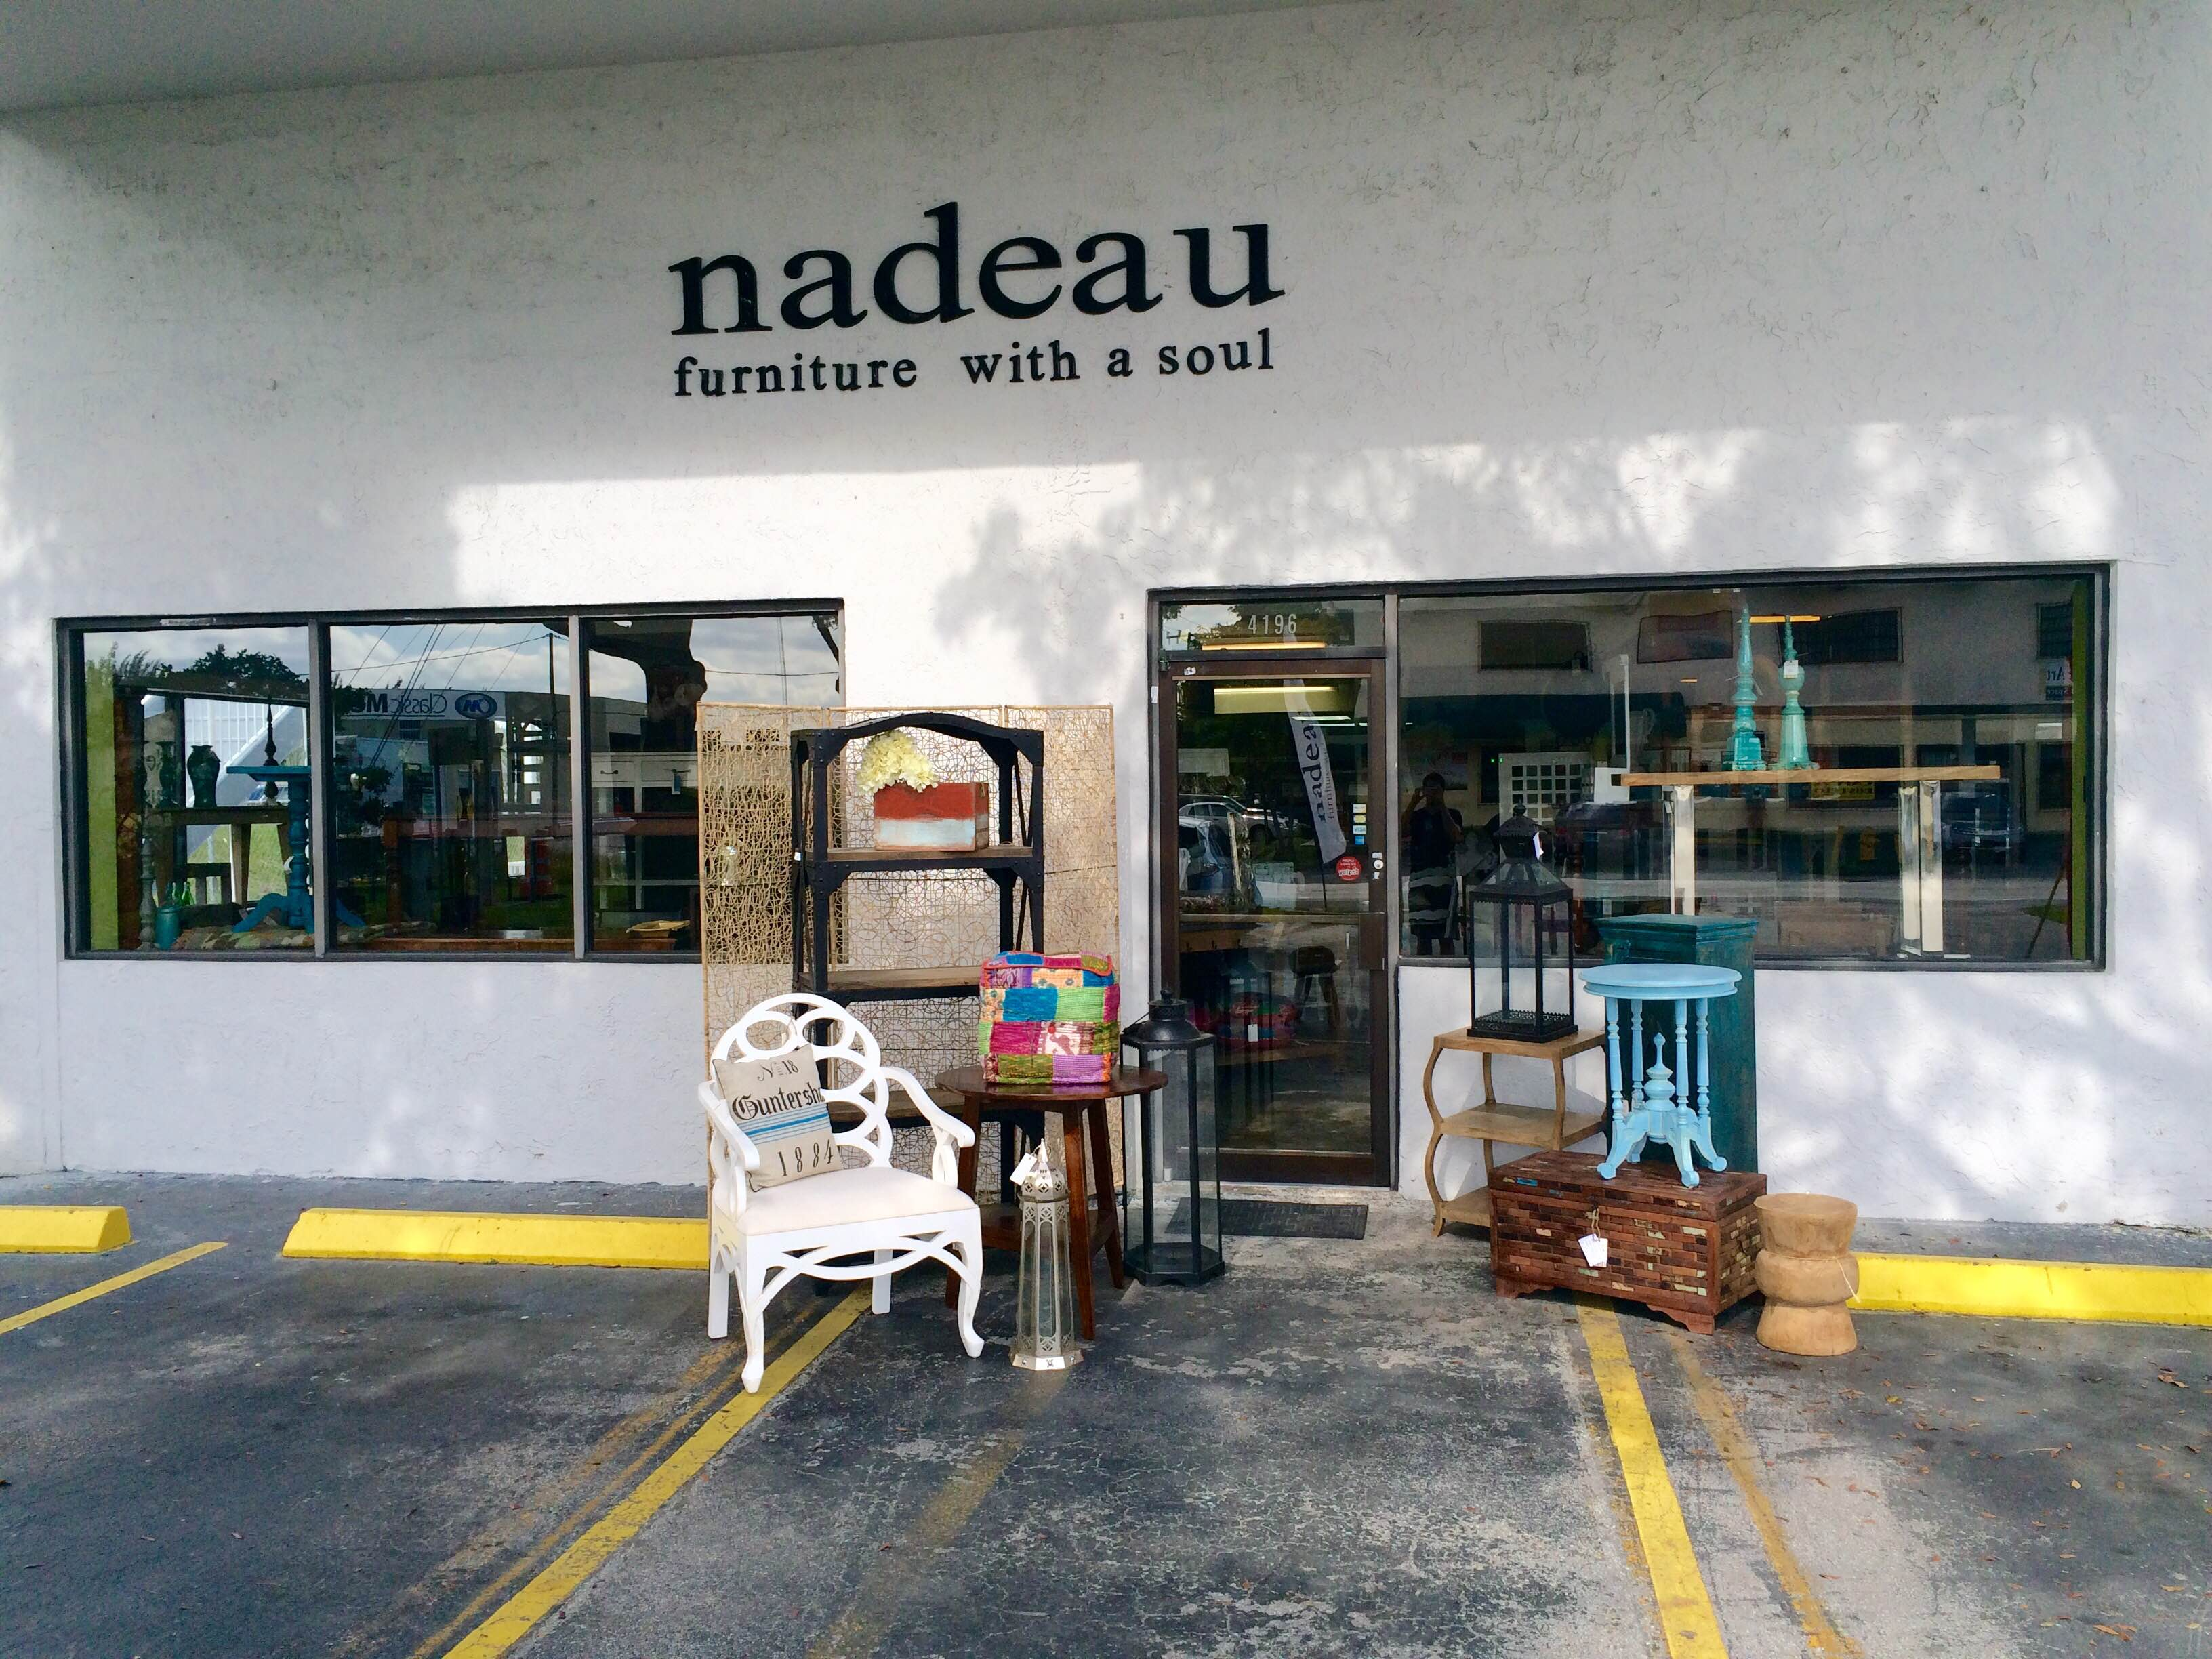 Furniture Store Miami FL Nadeau